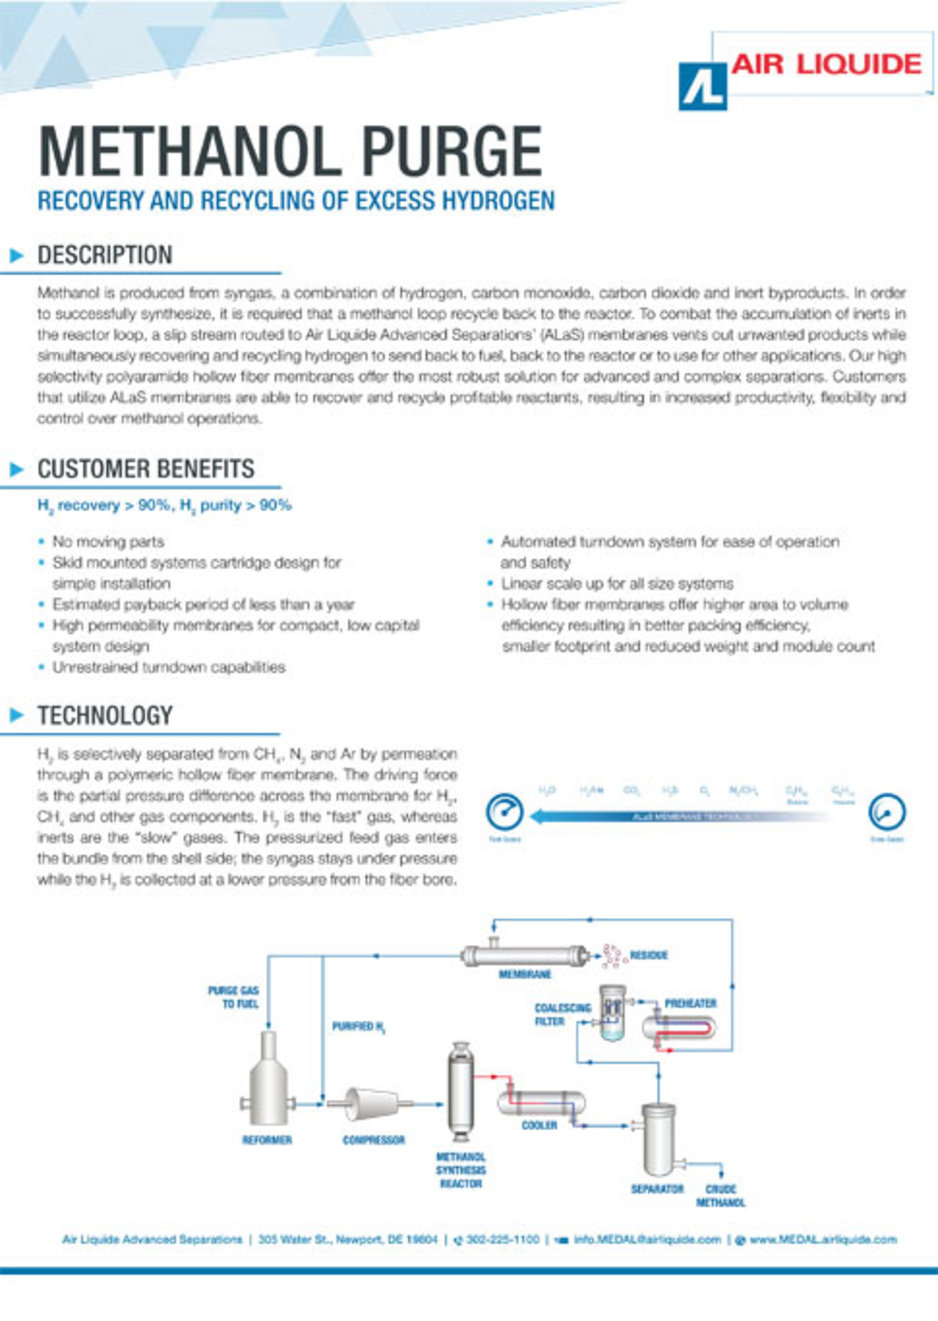 Methanol Purge, recovery and recycling of excess hydrogen